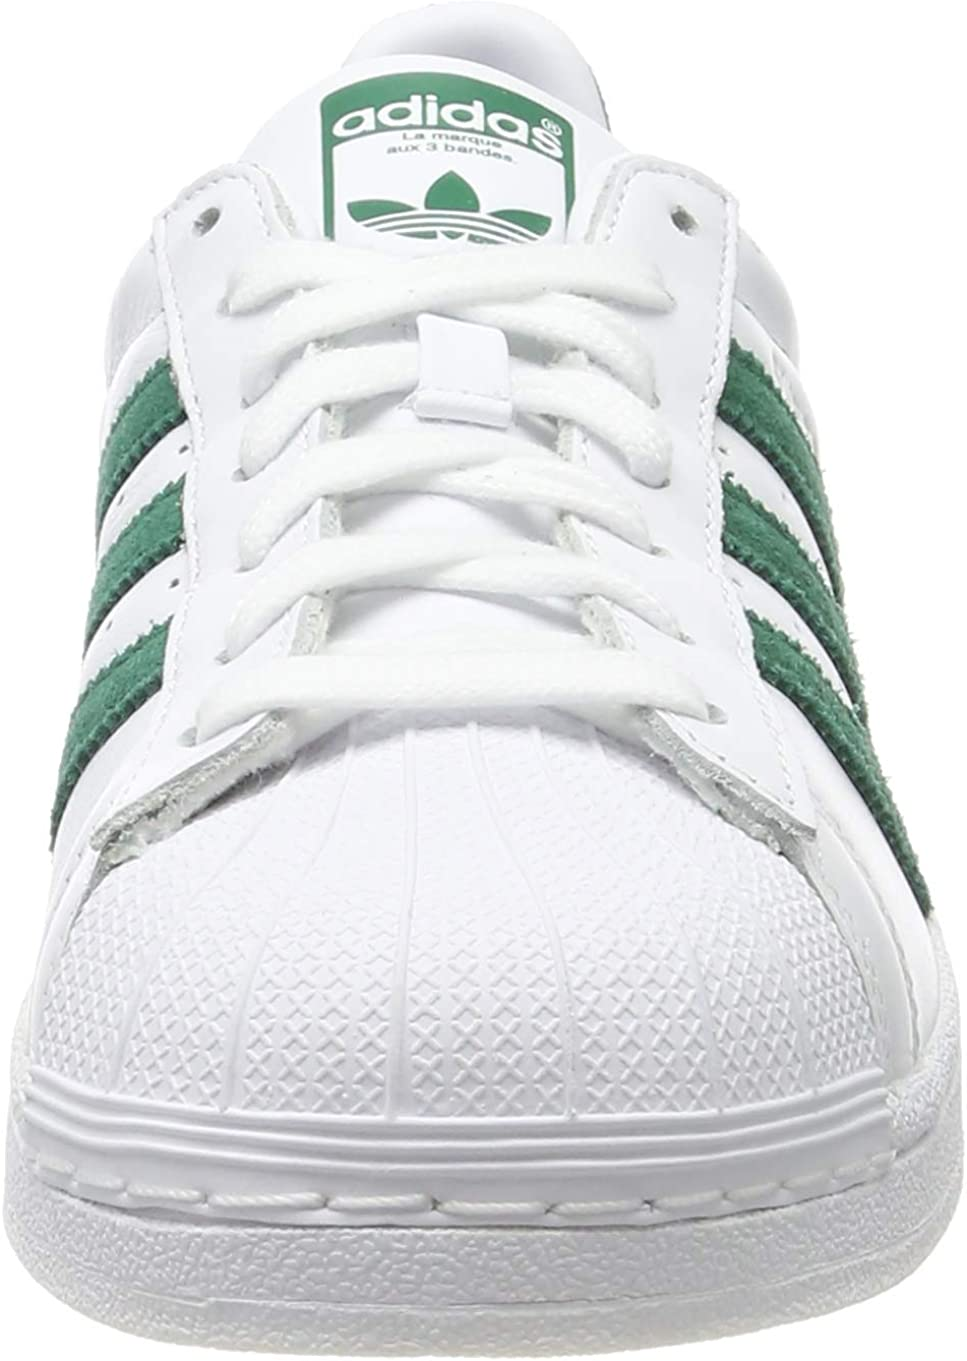 adidas Superstar, Chaussures de Gymnastique Homme Blanc Ftwr White Collegiate Green Ftwr White Ftwr White Collegiate Green Ftwr White